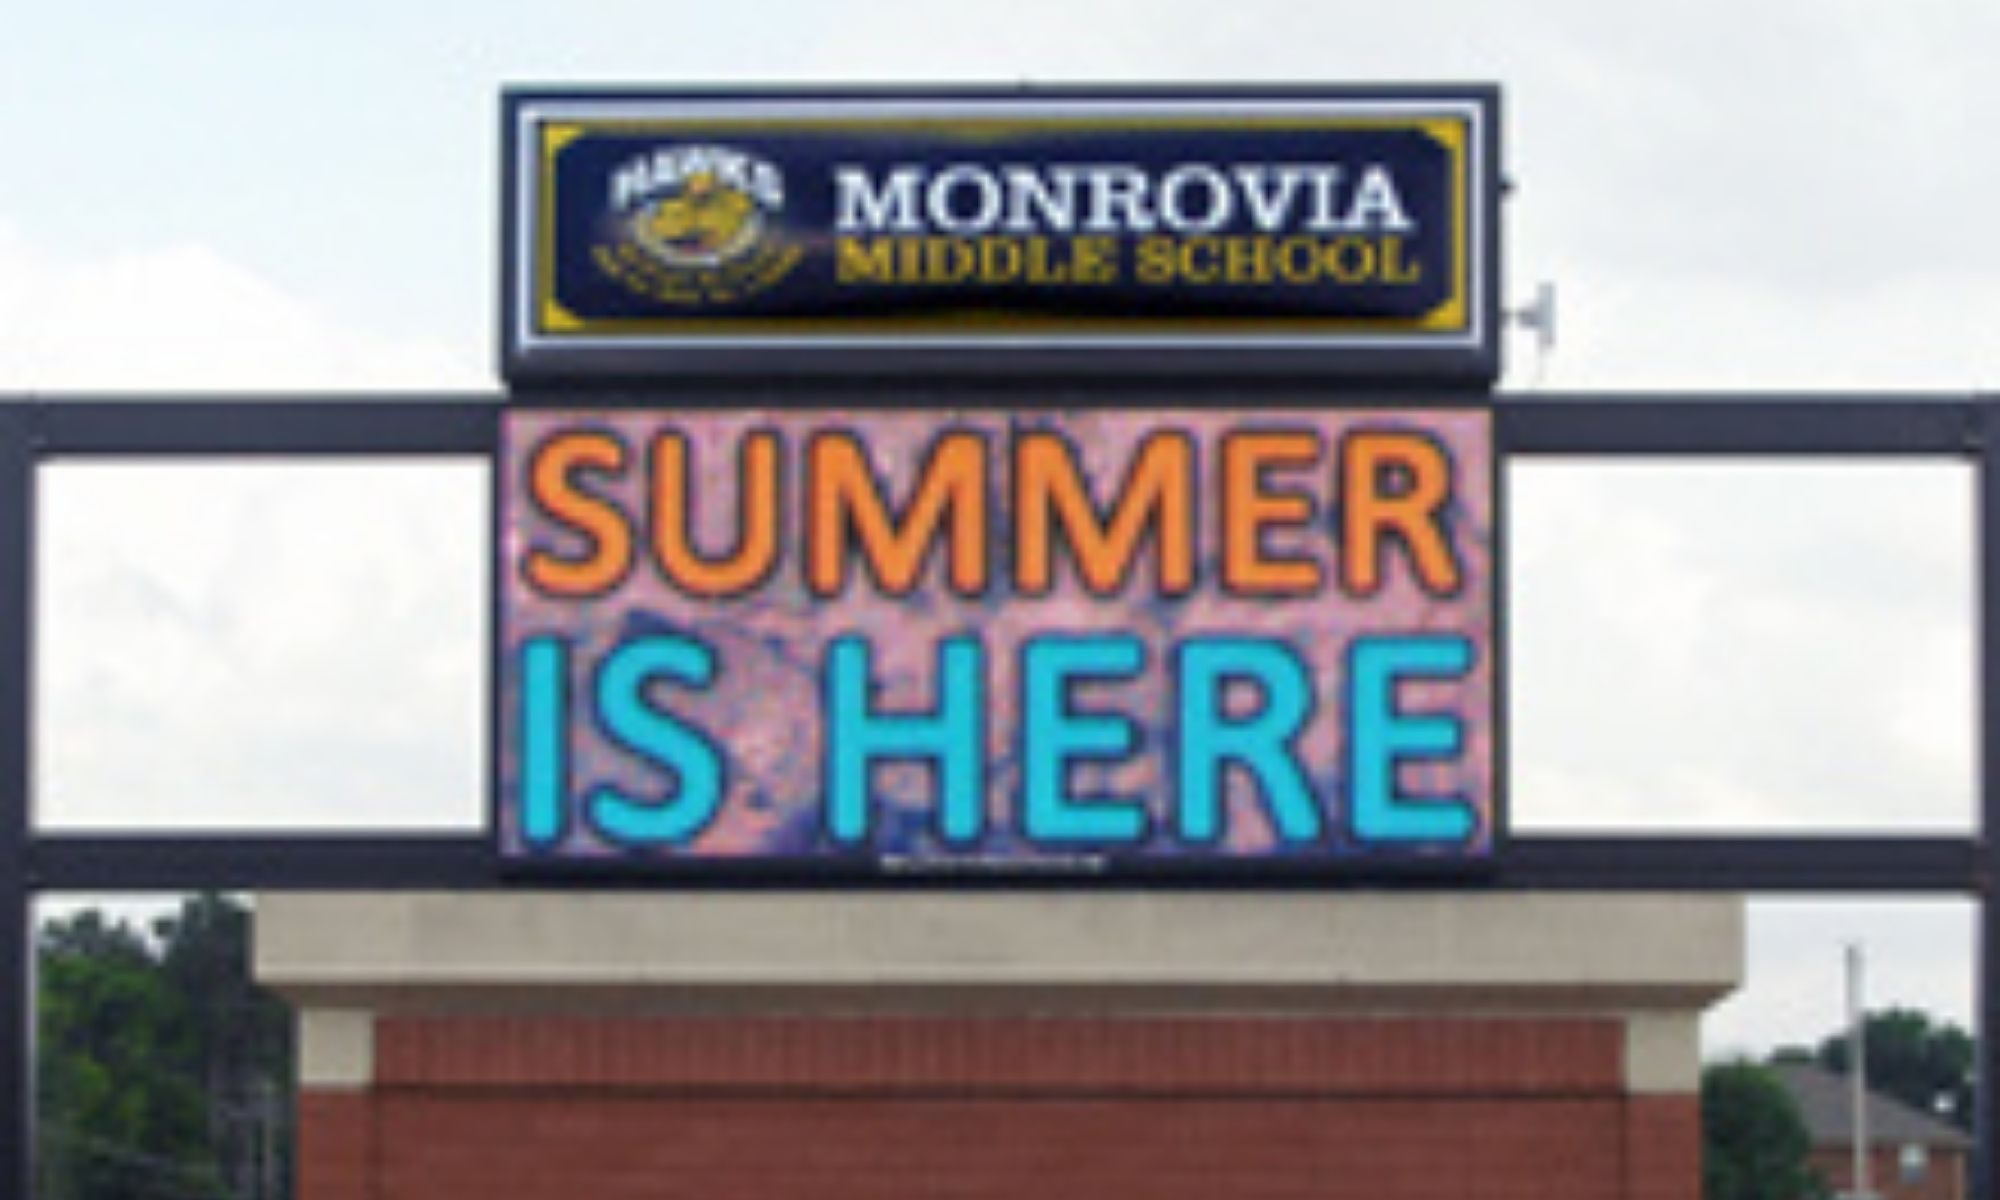 Monrovia Middle School Outdoor LED Sign